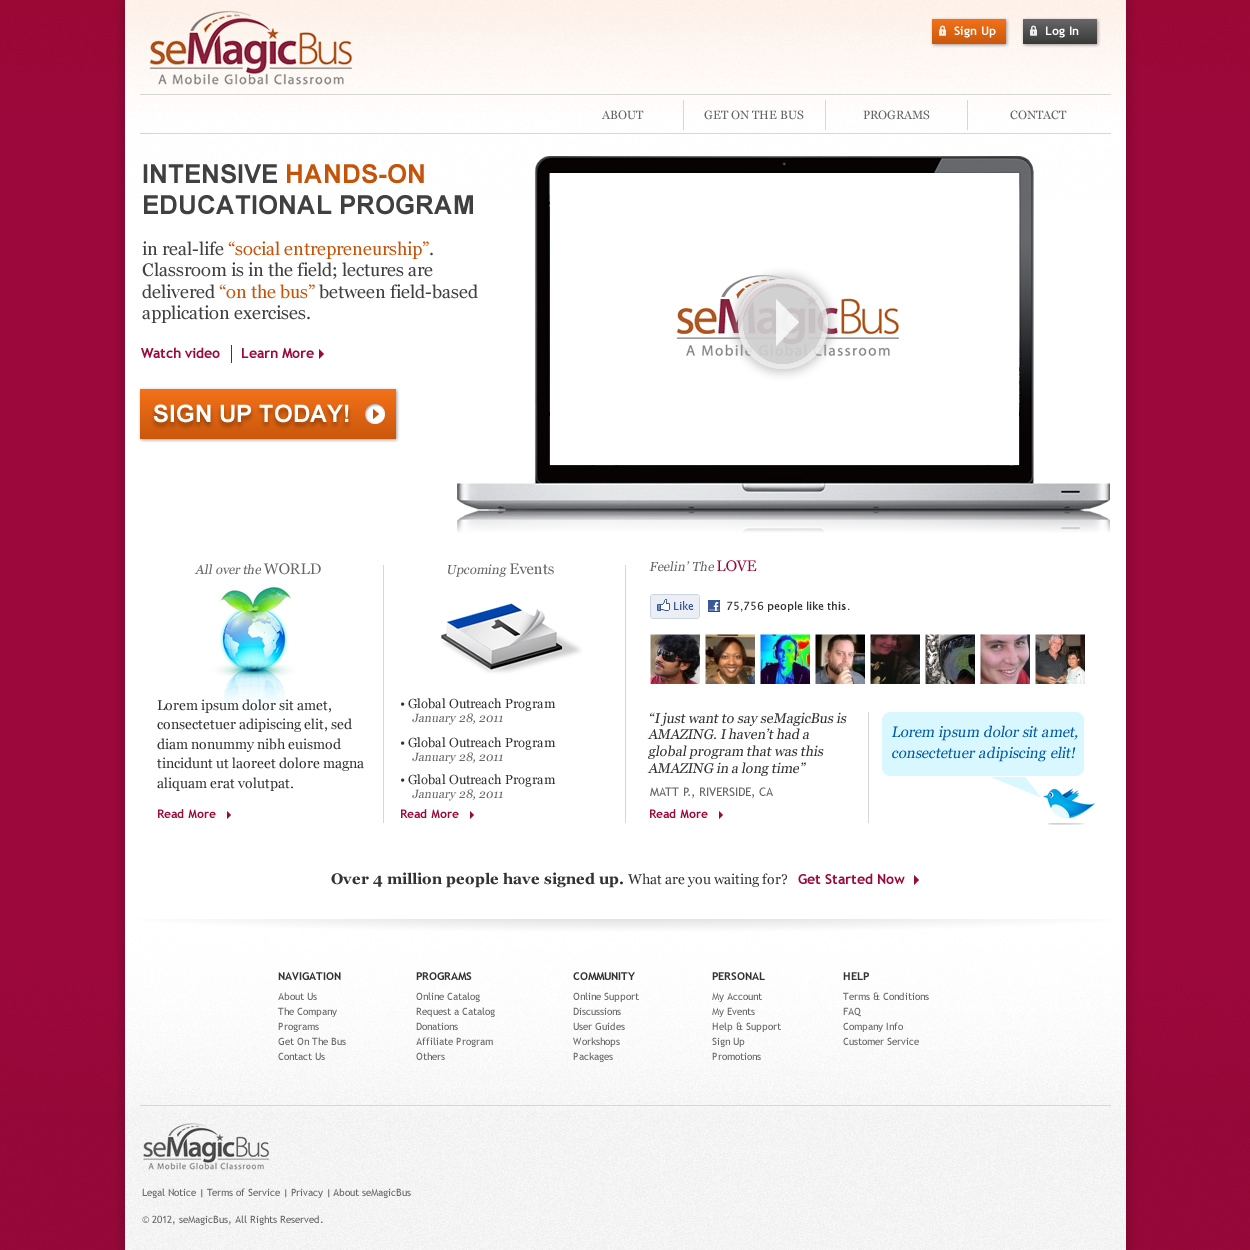 Web Page Design by johngabriel - Entry No. 22 in the Web Page Design Contest seMagicBus Website.